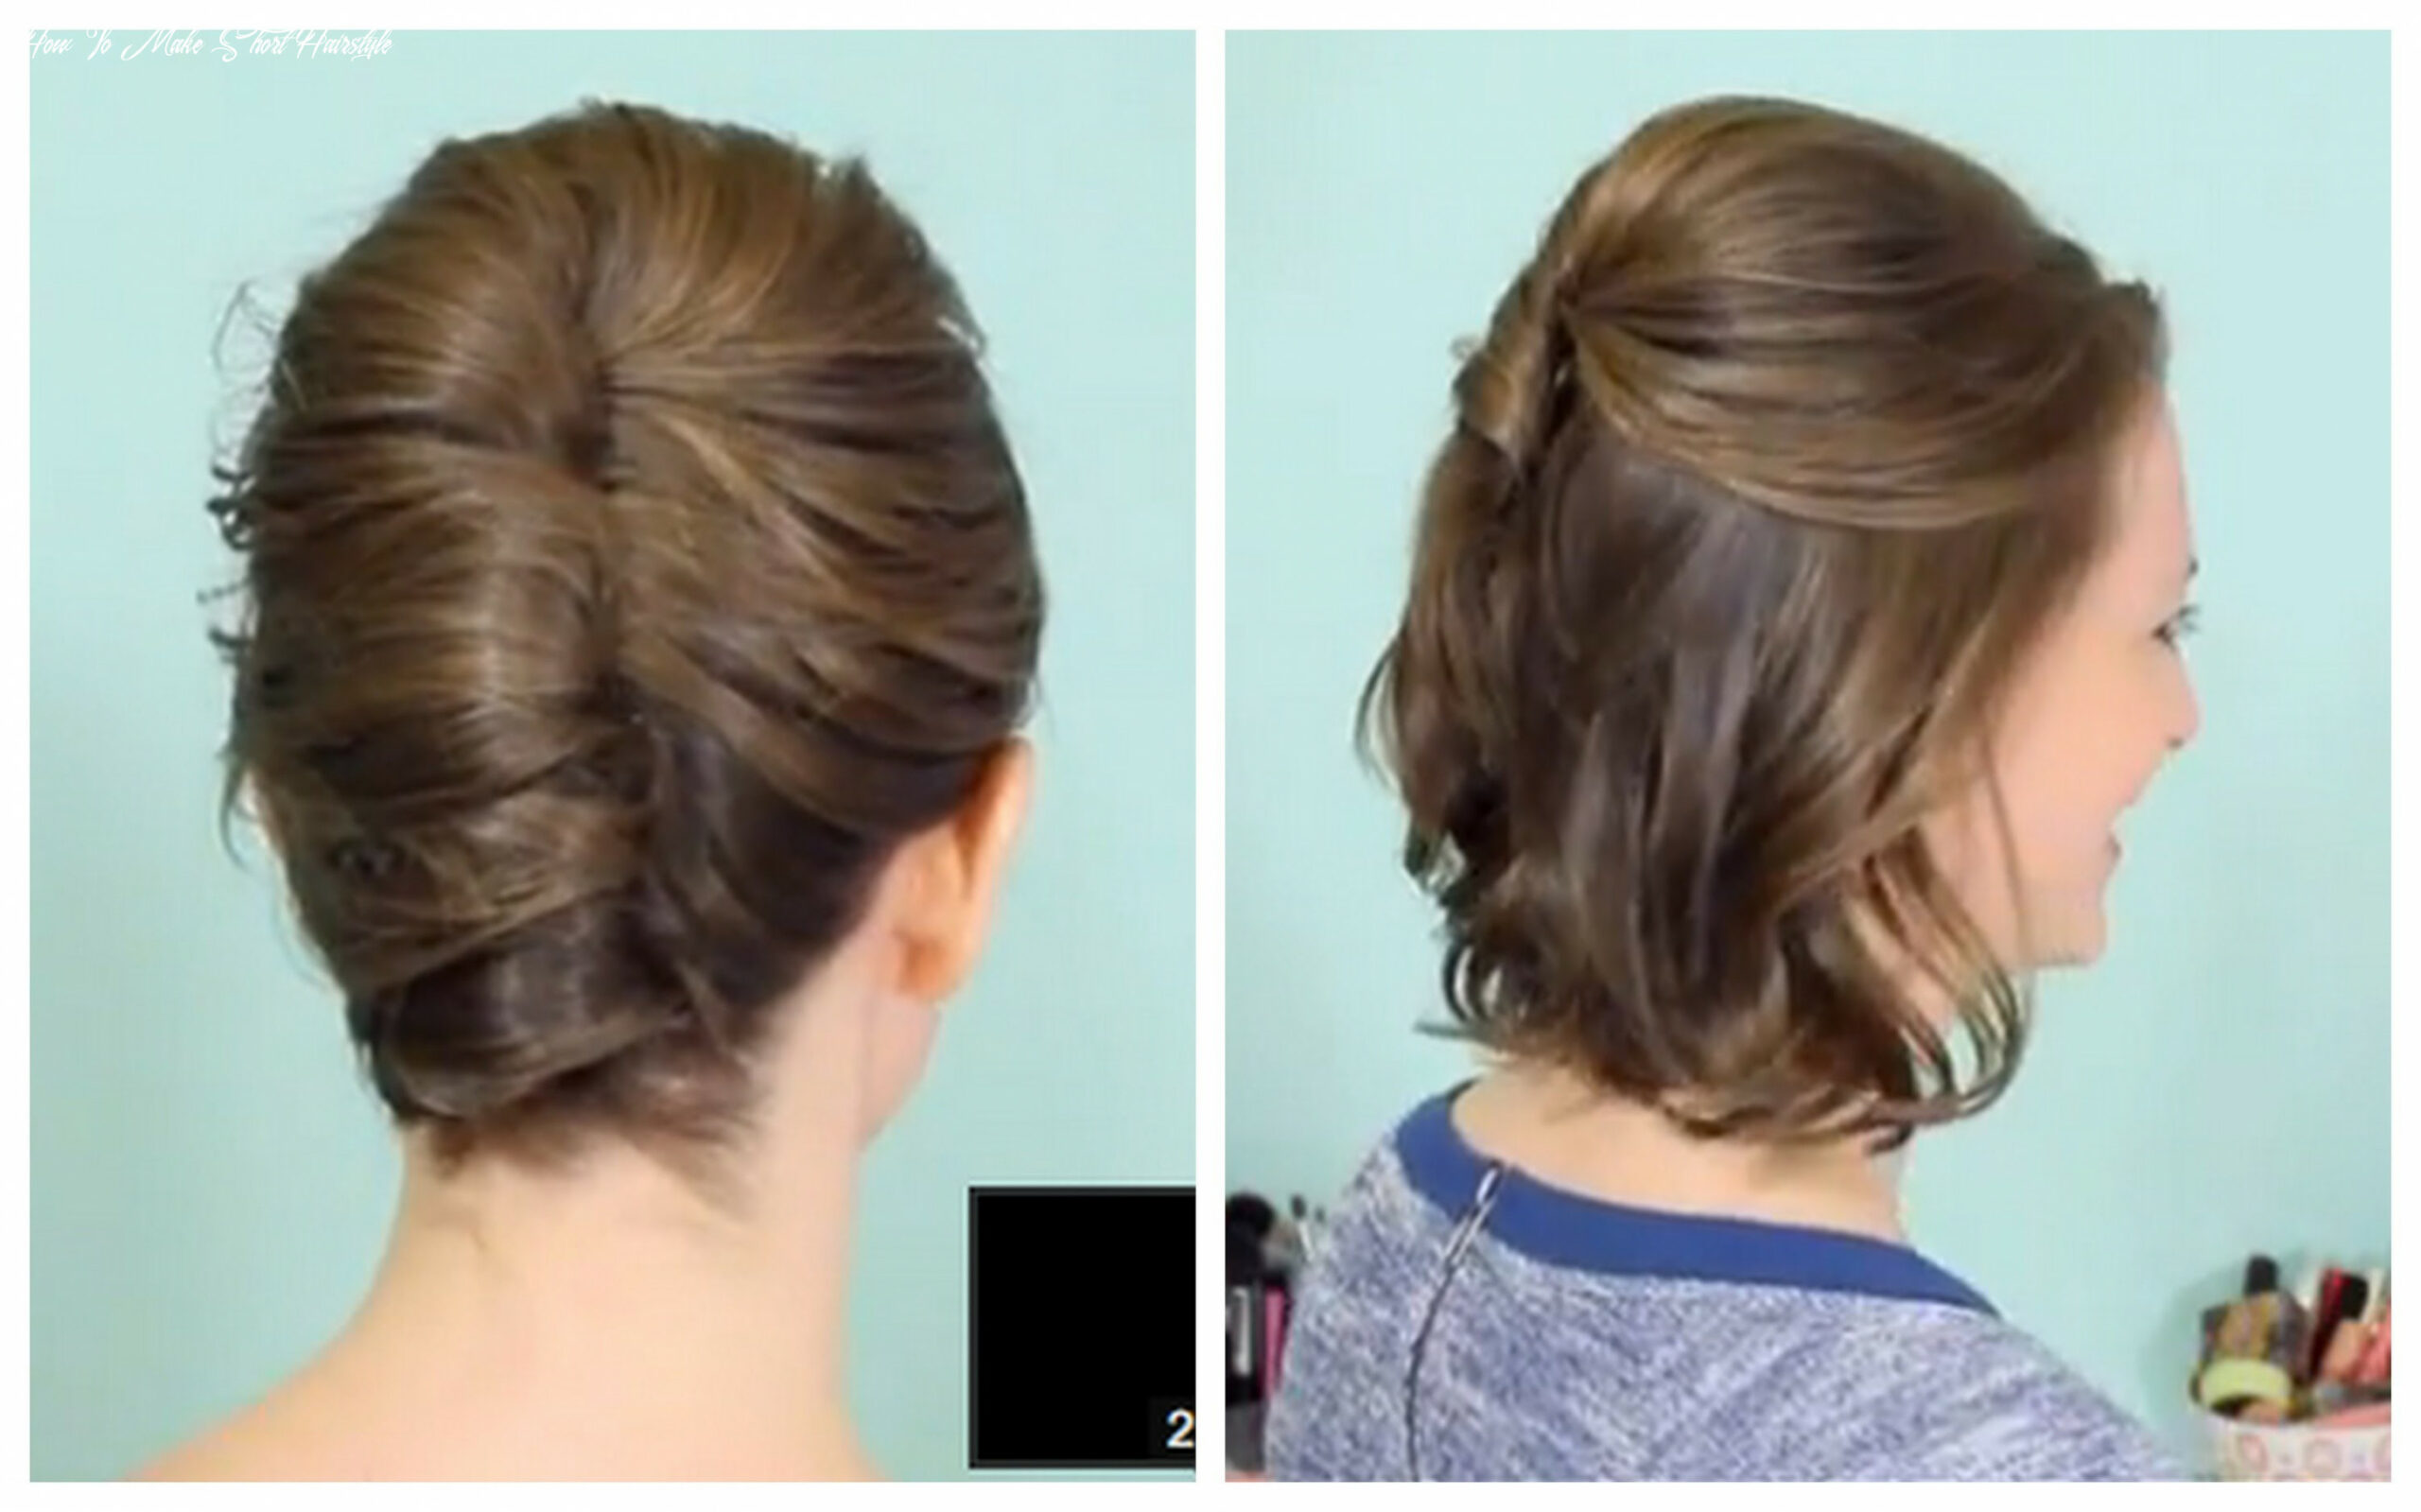 How To Make Super Styles For Short Hair | Ak Clinics